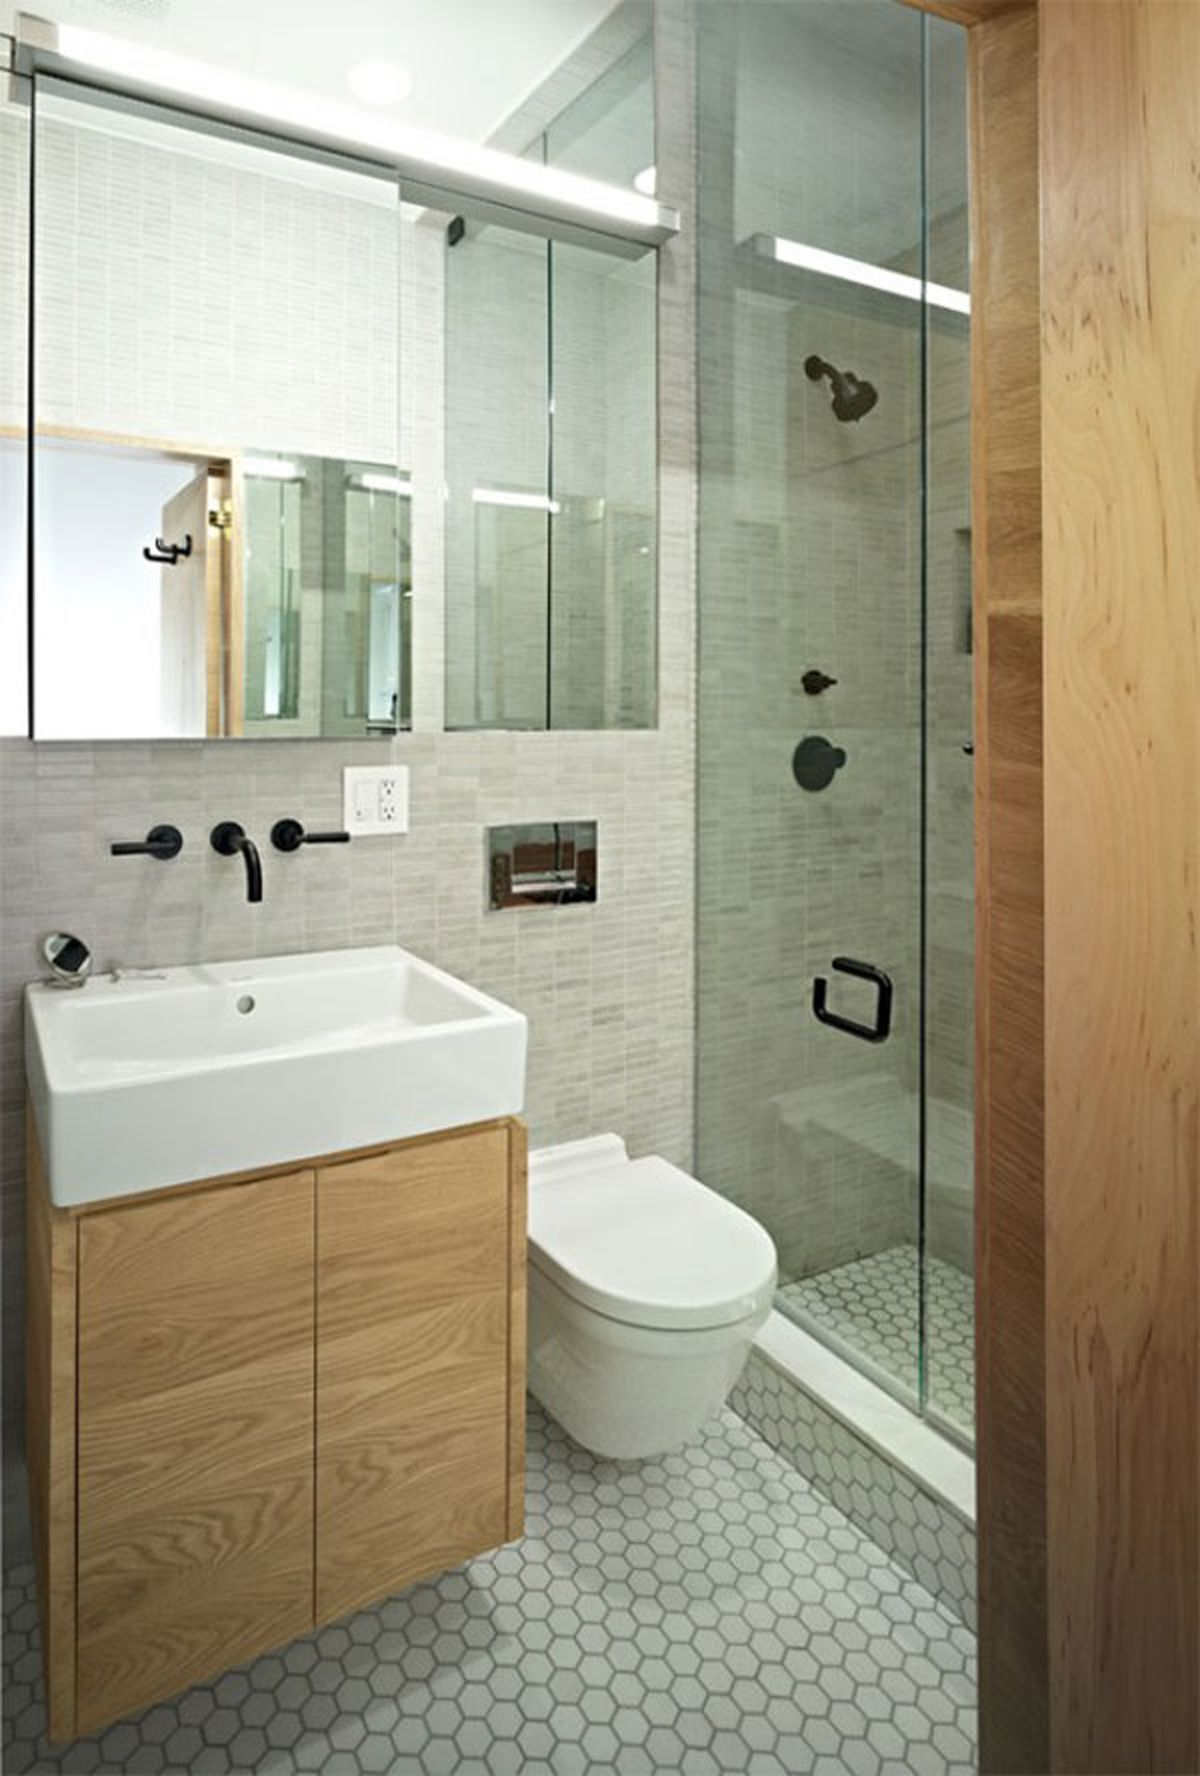 Pictures Of Small Bathroom Remodels With Modern Compact Toilet Extraordinary Small Bathroom Remodeling Design Inspiration